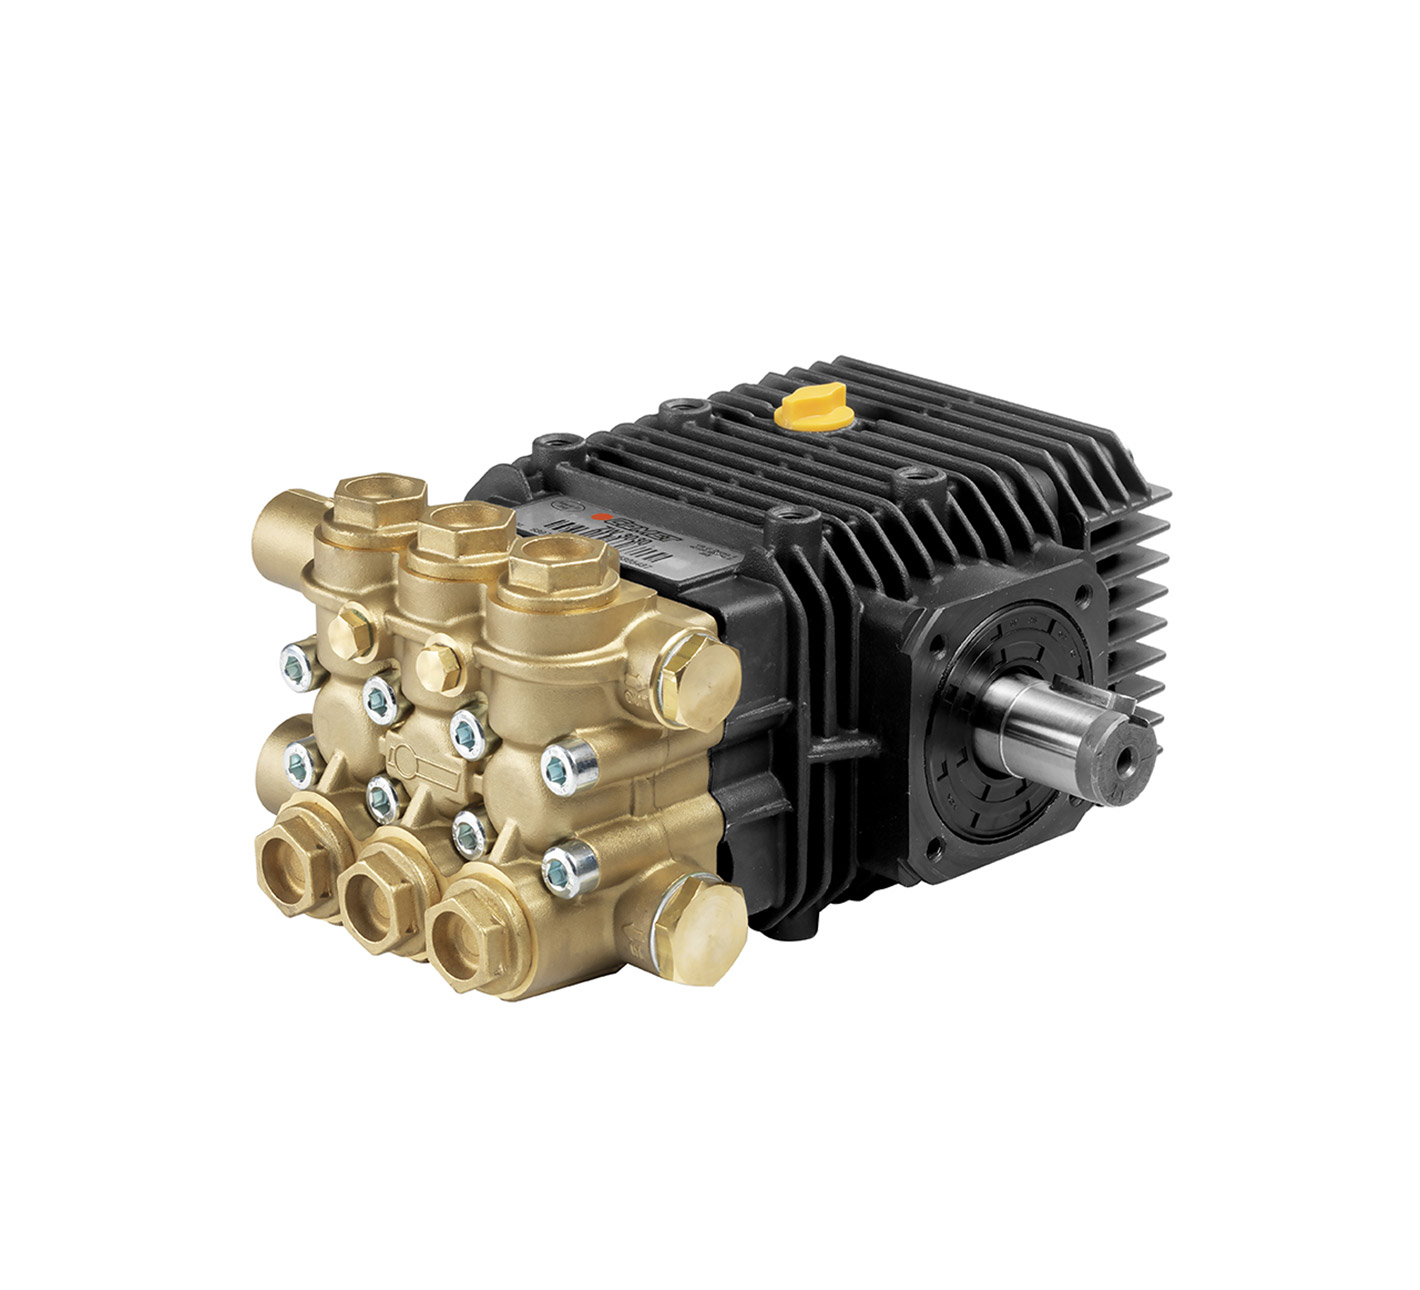 zw 24 Comet Industrial Pumps